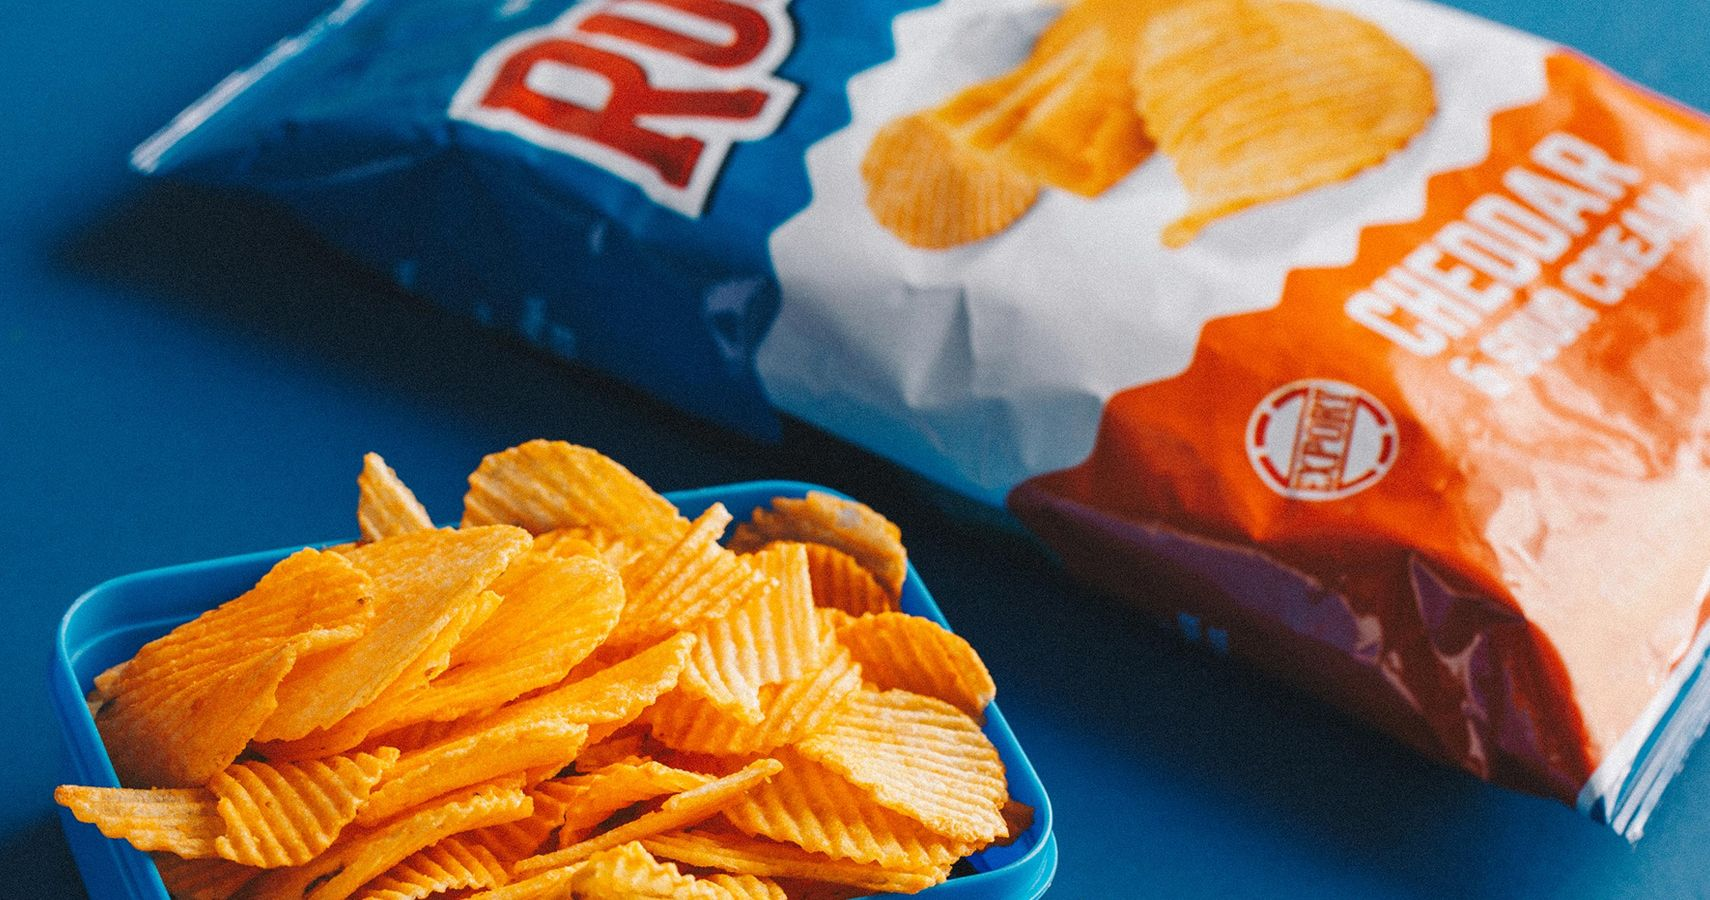 Crispy Goodness: Top 30 Chip Flavors, Ranked From 30th To 1st